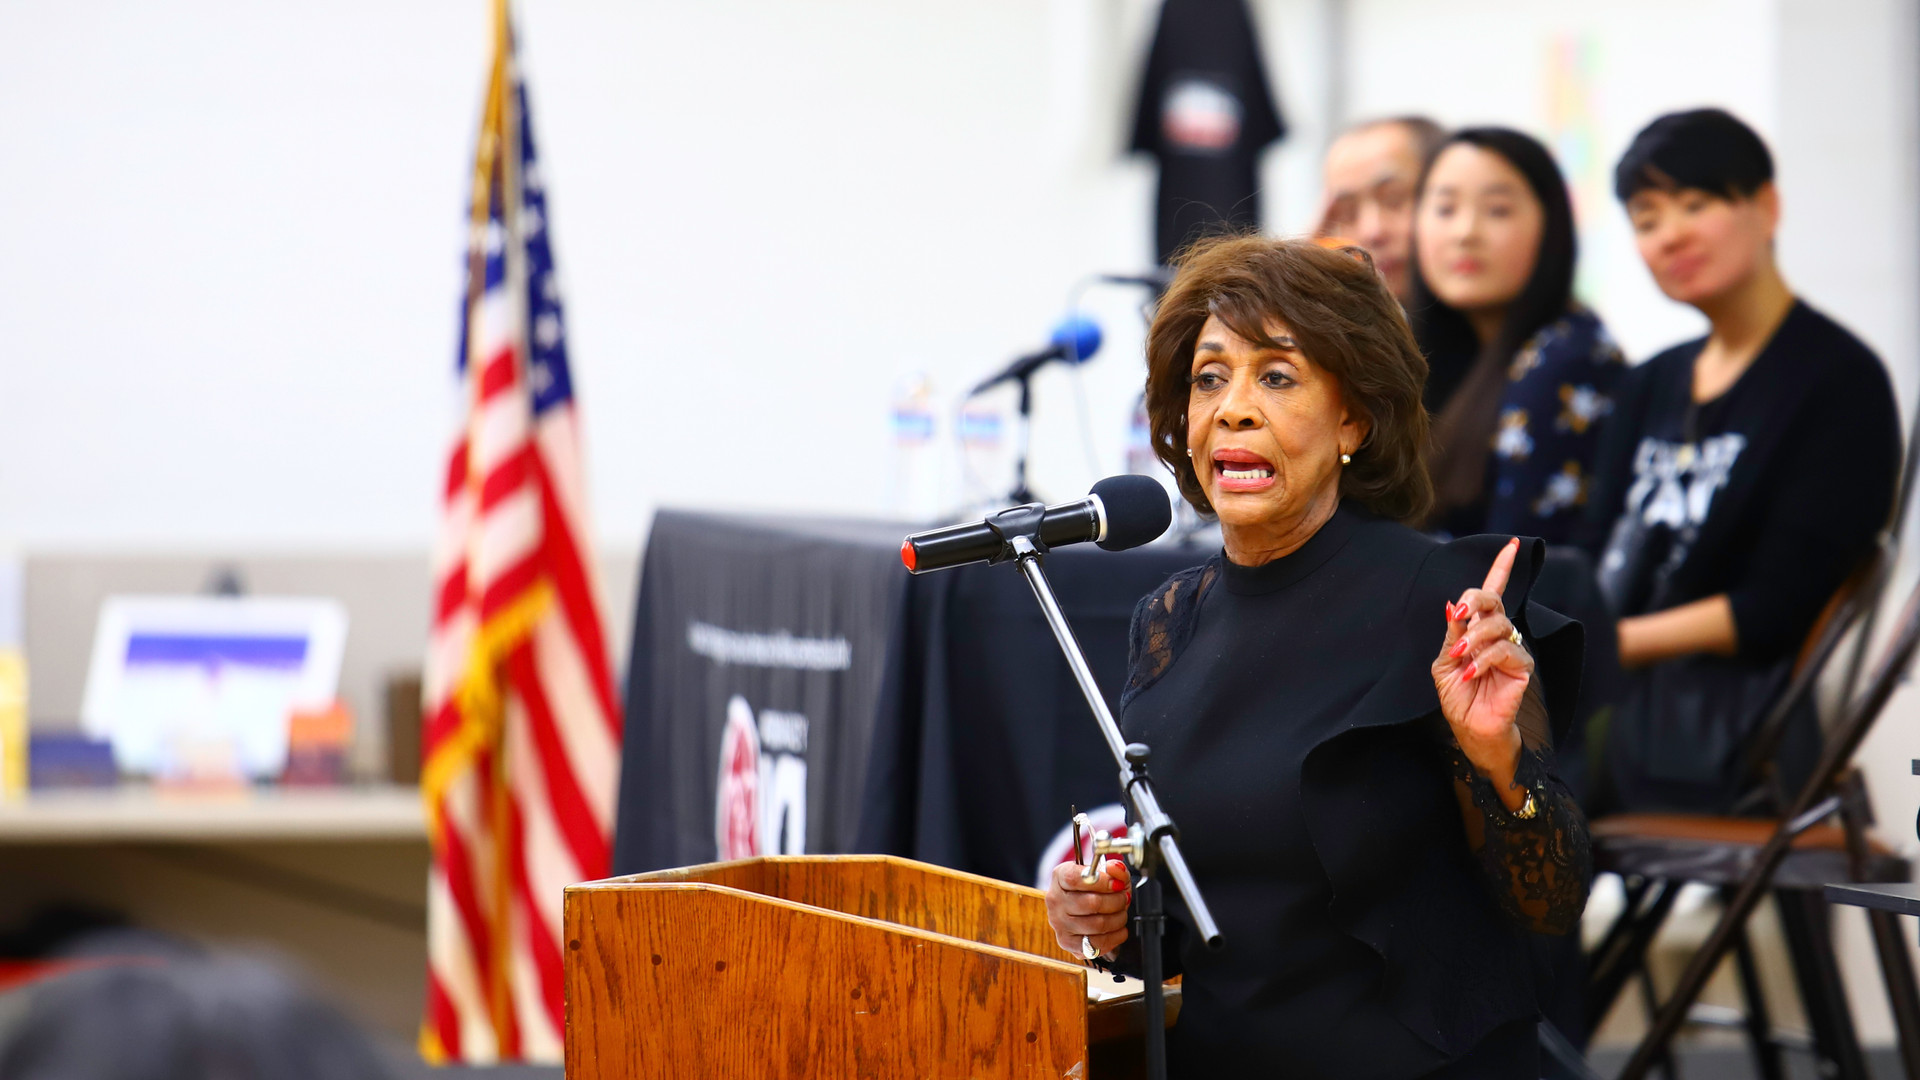 GVJCI Day of Remembrance 2019 - Rep. Maxine Waters